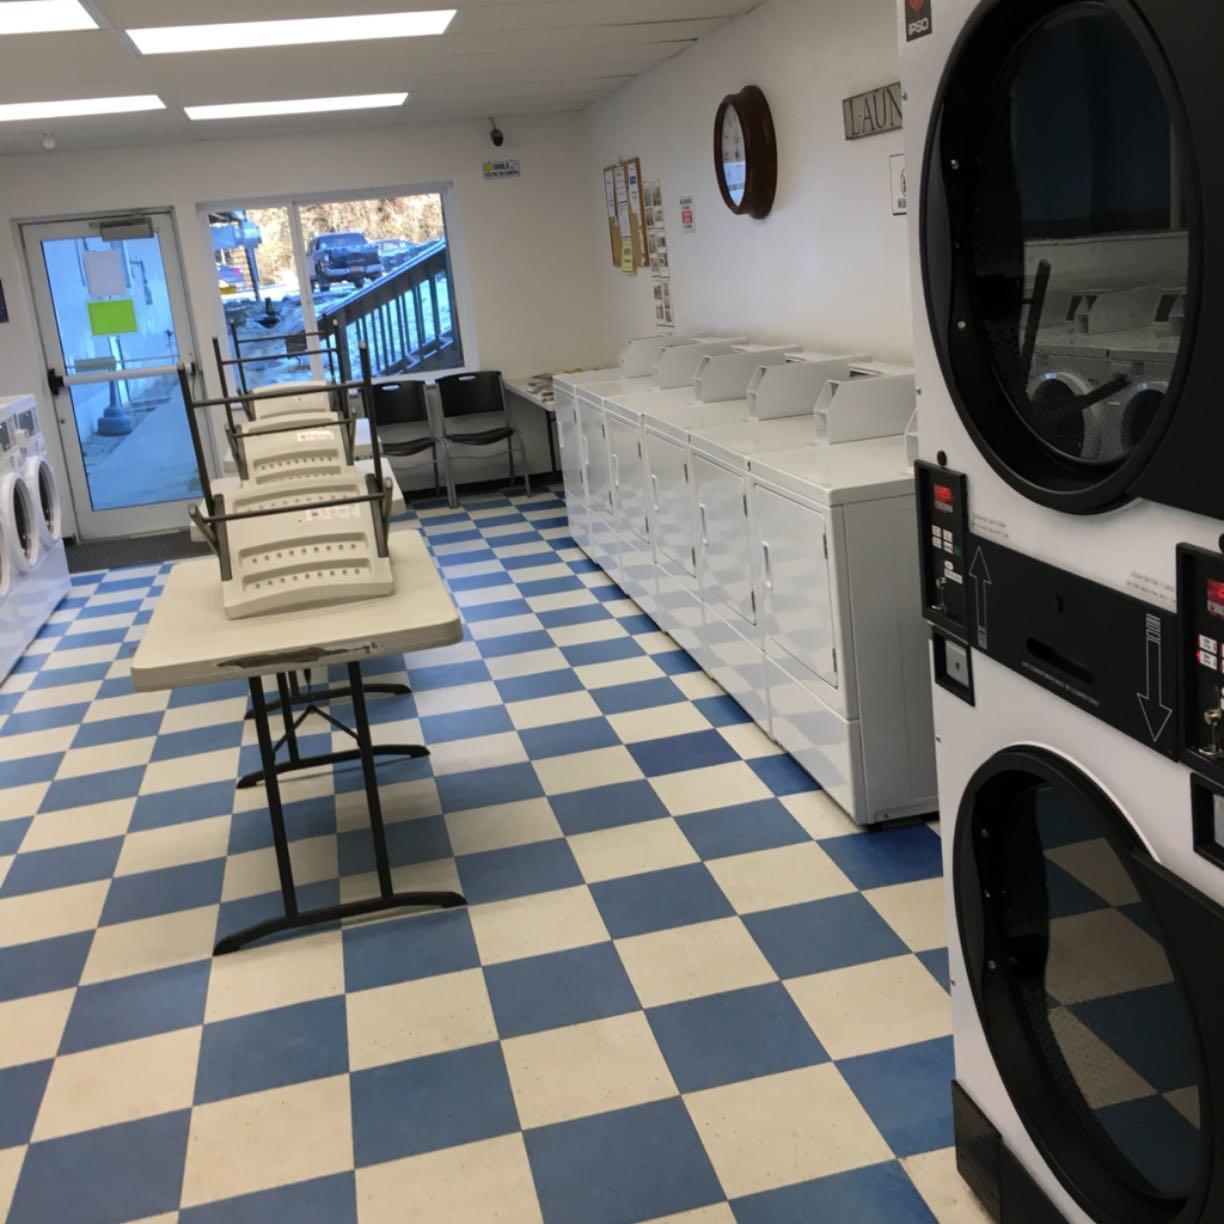 Squires Laundry and Showers image 1